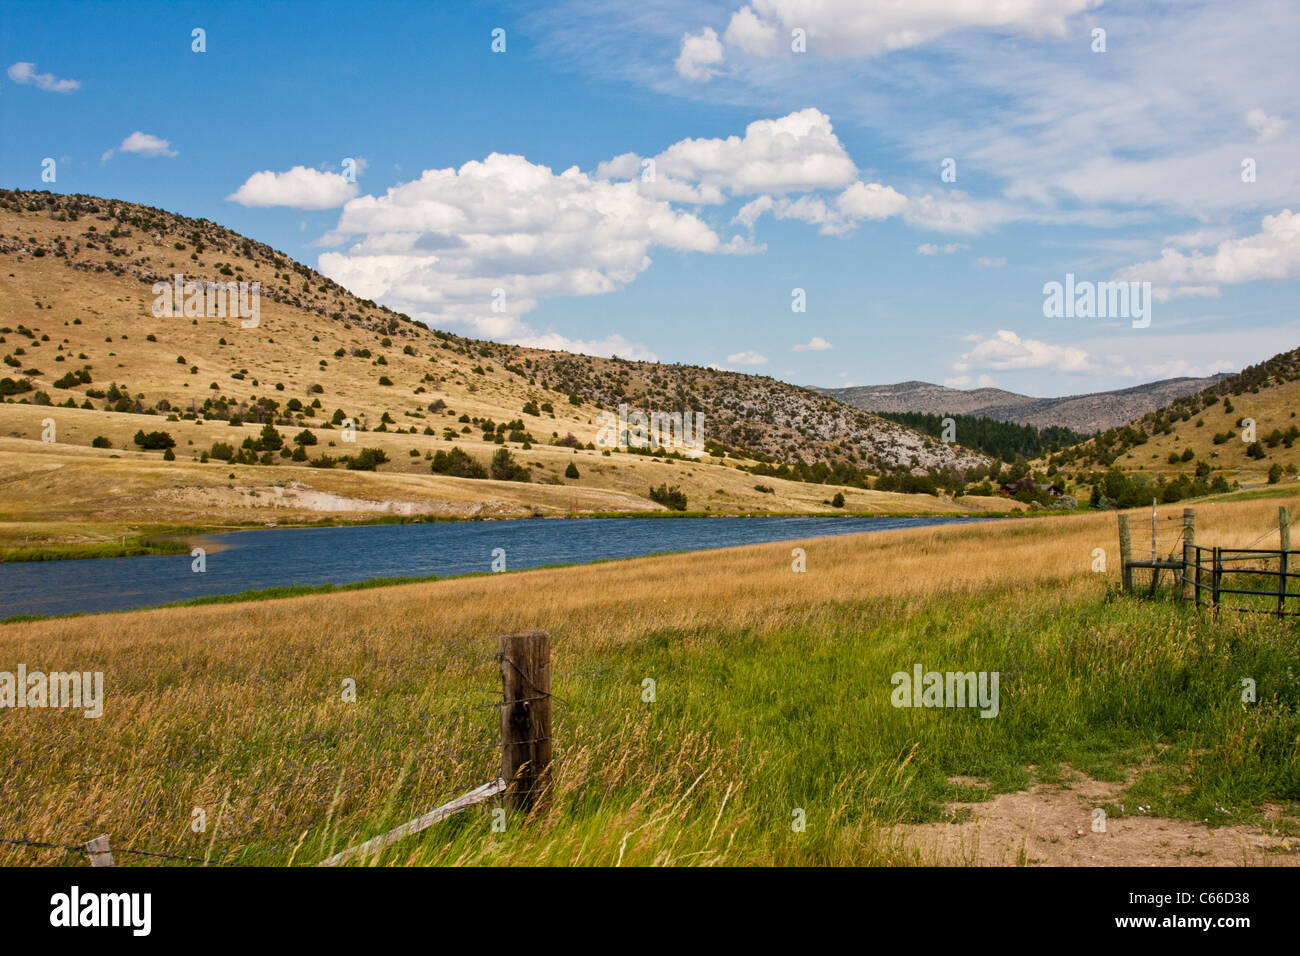 Farm lands and lake along Montana road 359 south of Butte, Montana. - Stock Image